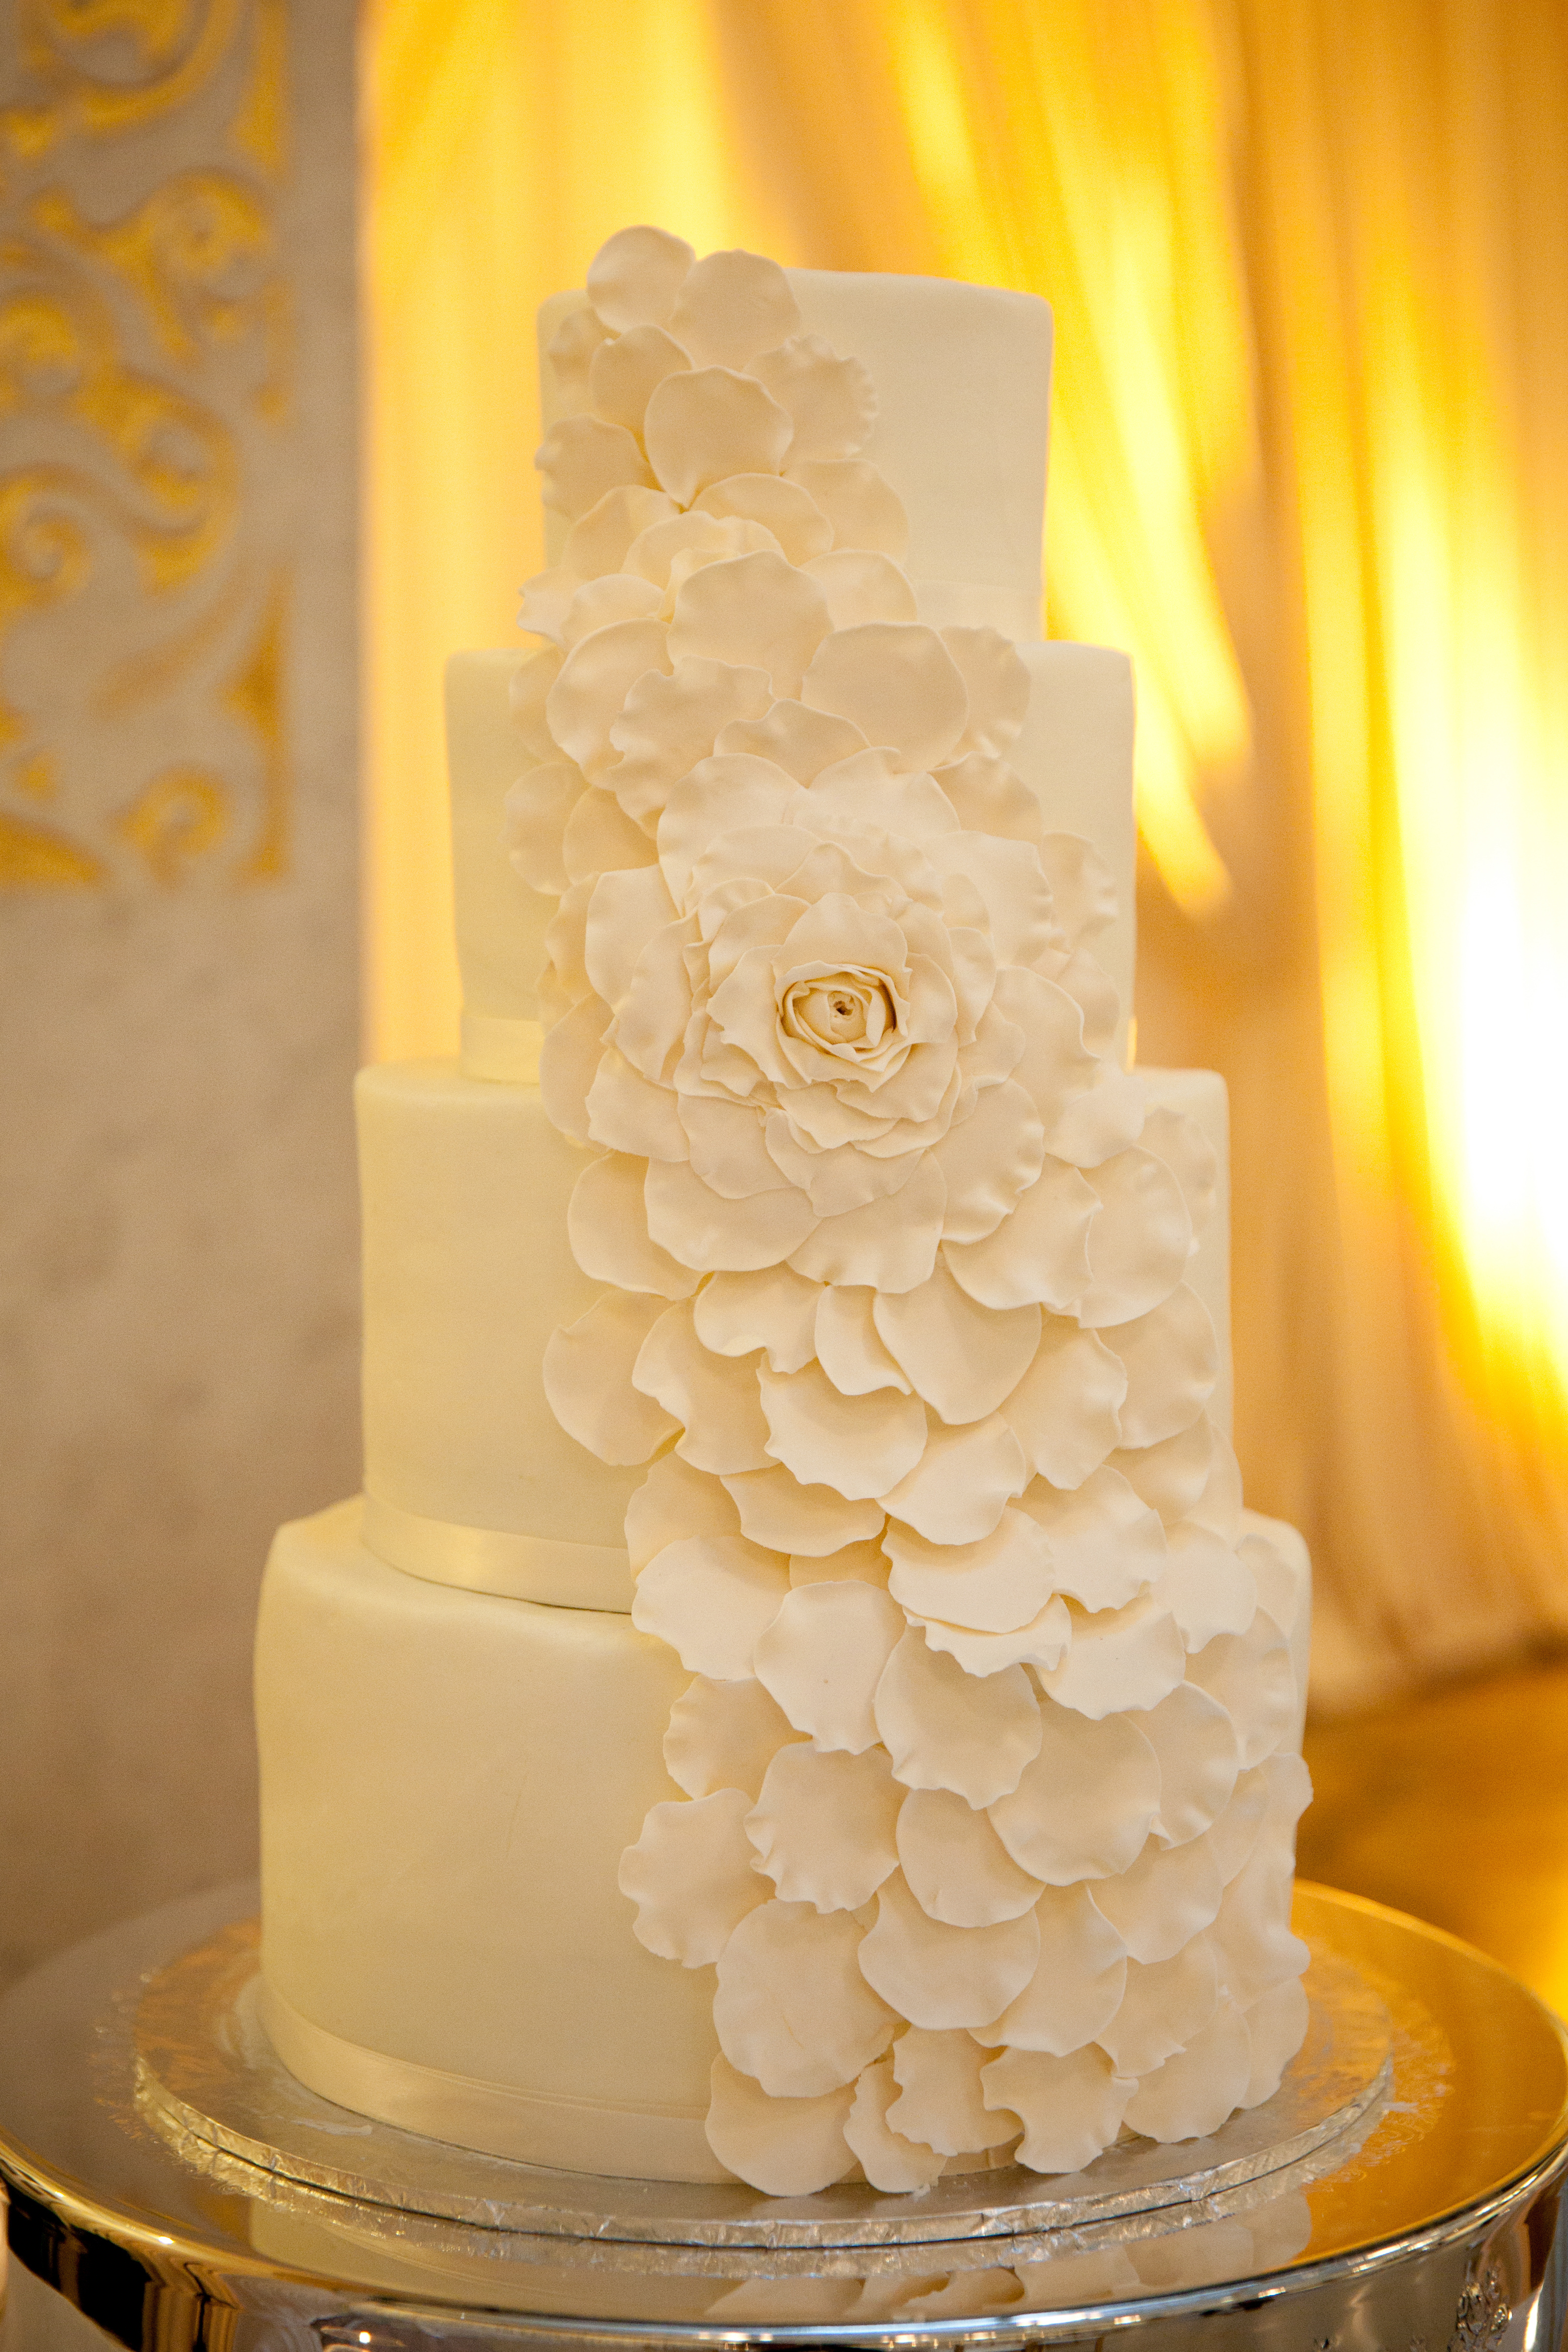 Cakes, Real Weddings, Wedding Style, Modern Wedding Cakes, Round Wedding Cakes, Wedding Cakes, Spring Weddings, City Real Weddings, Classic Real Weddings, Midwest Real Weddings, Spring Real Weddings, City Weddings